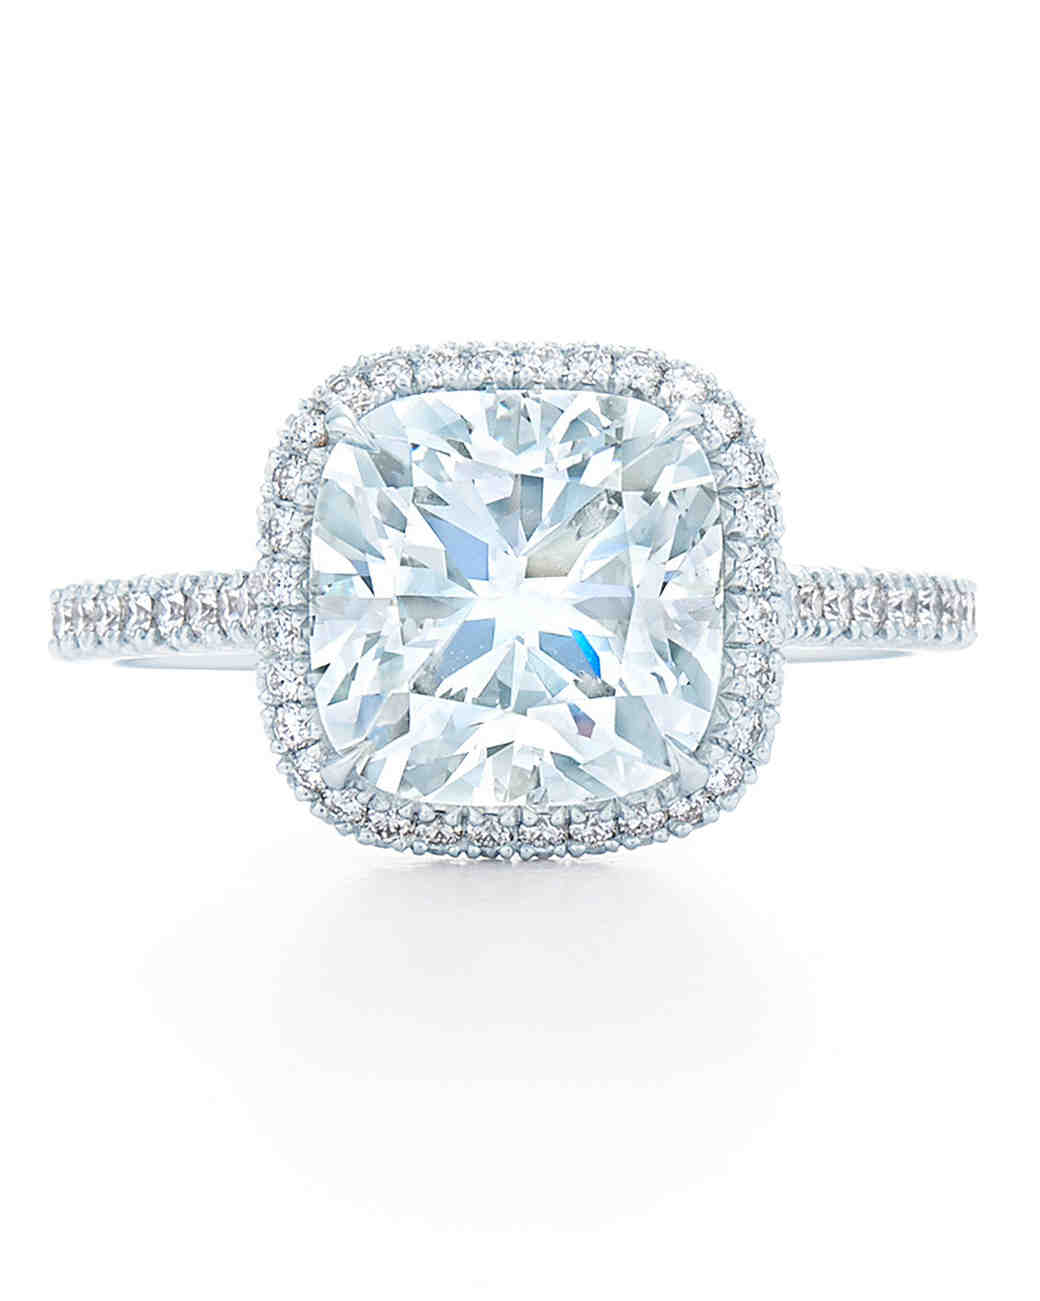 elizab neo engagement cushion carat product eliza cut jewellery moissanite ring rings